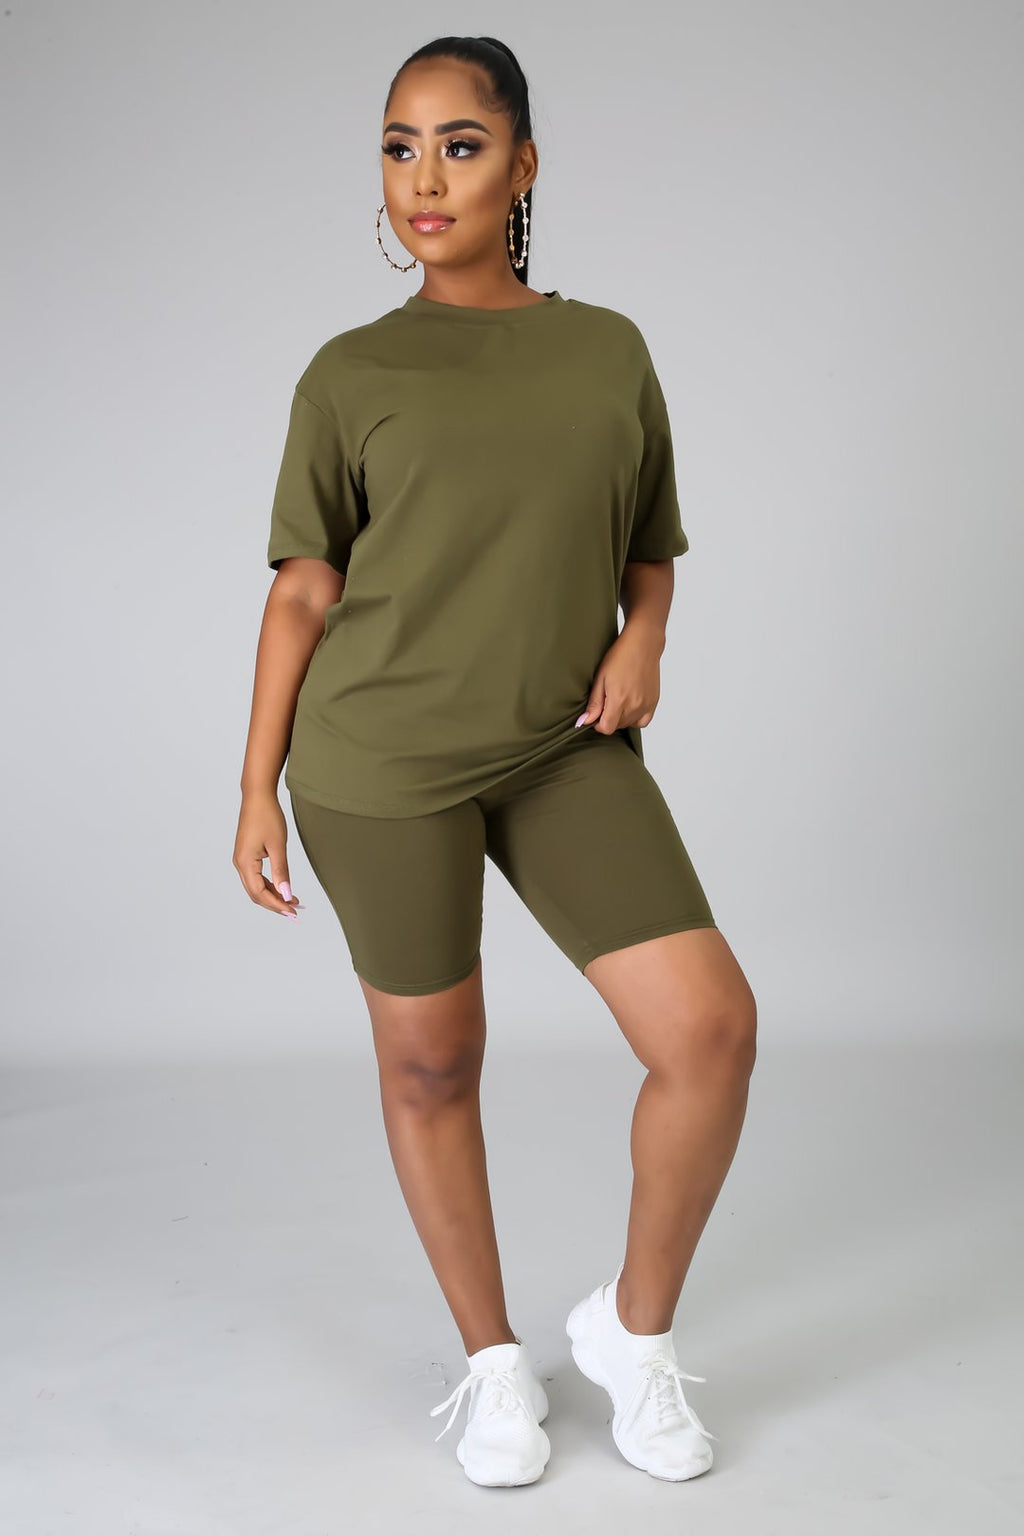 Ready To Chill Short Set (9 Colors) Seamless Set